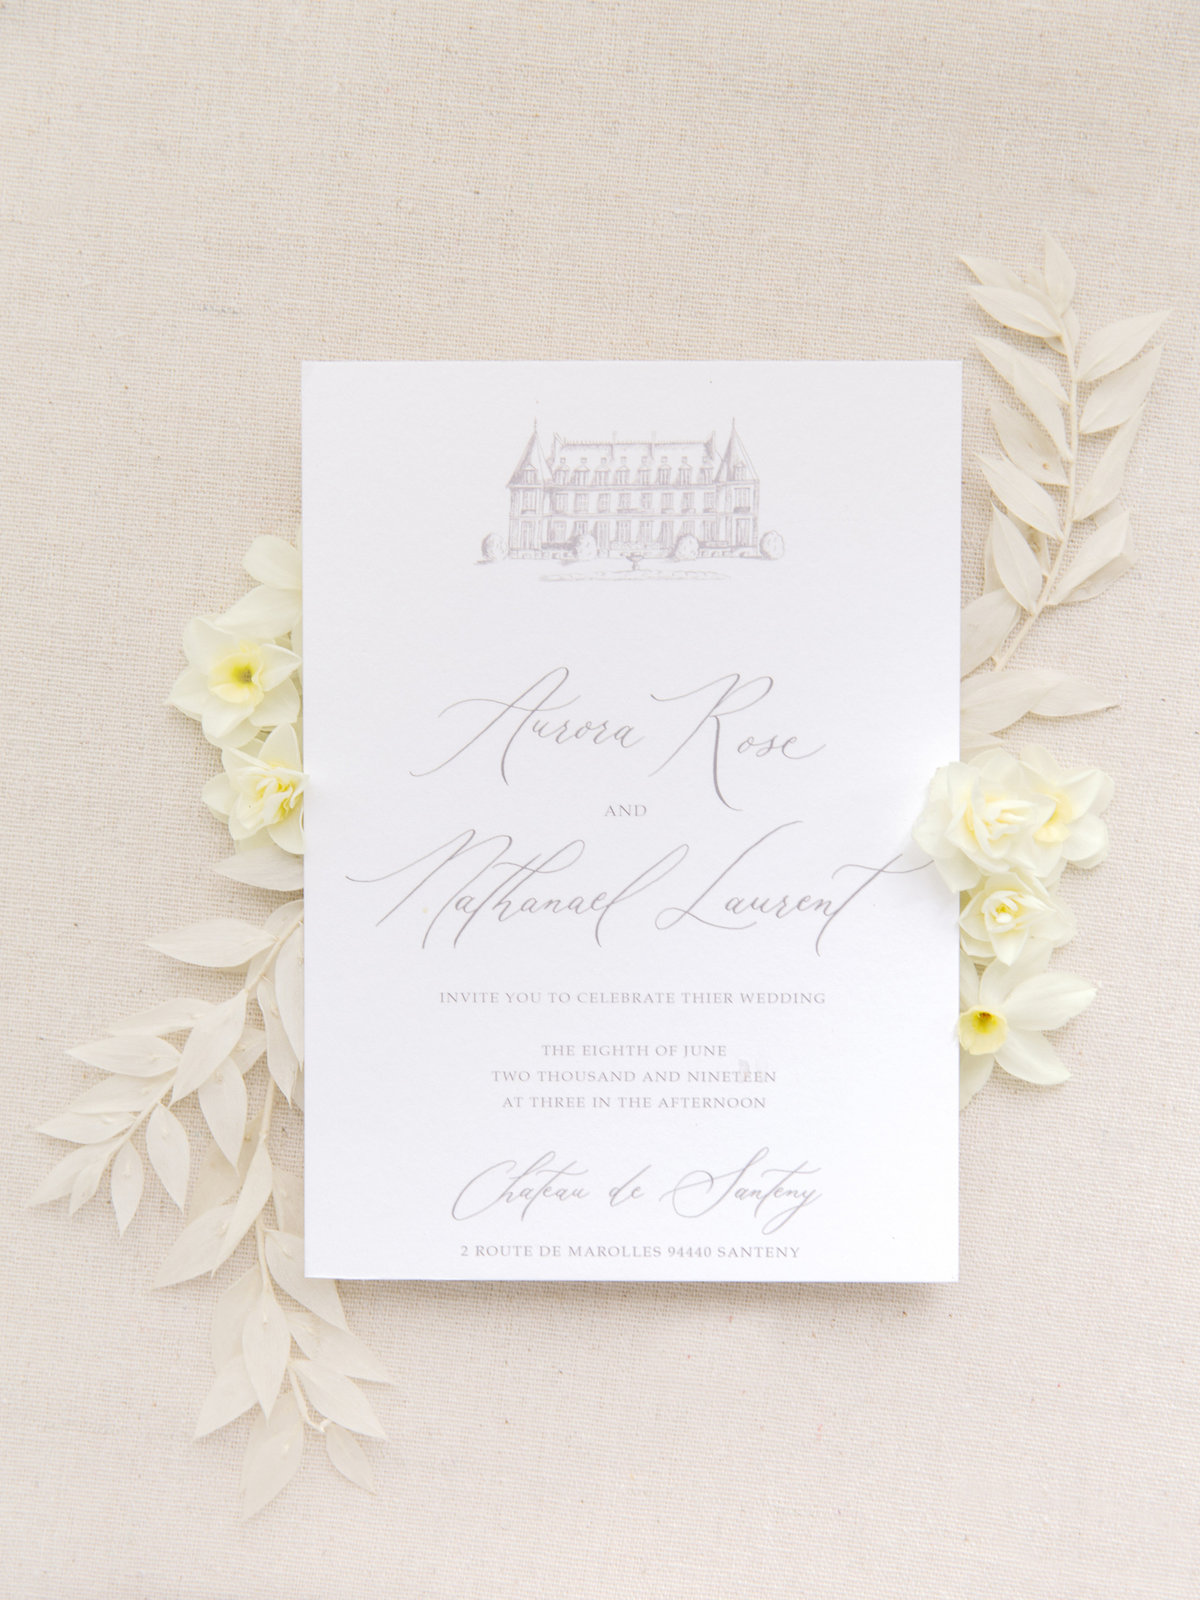 Luxurious french chateau wedding amelia soegijono0050